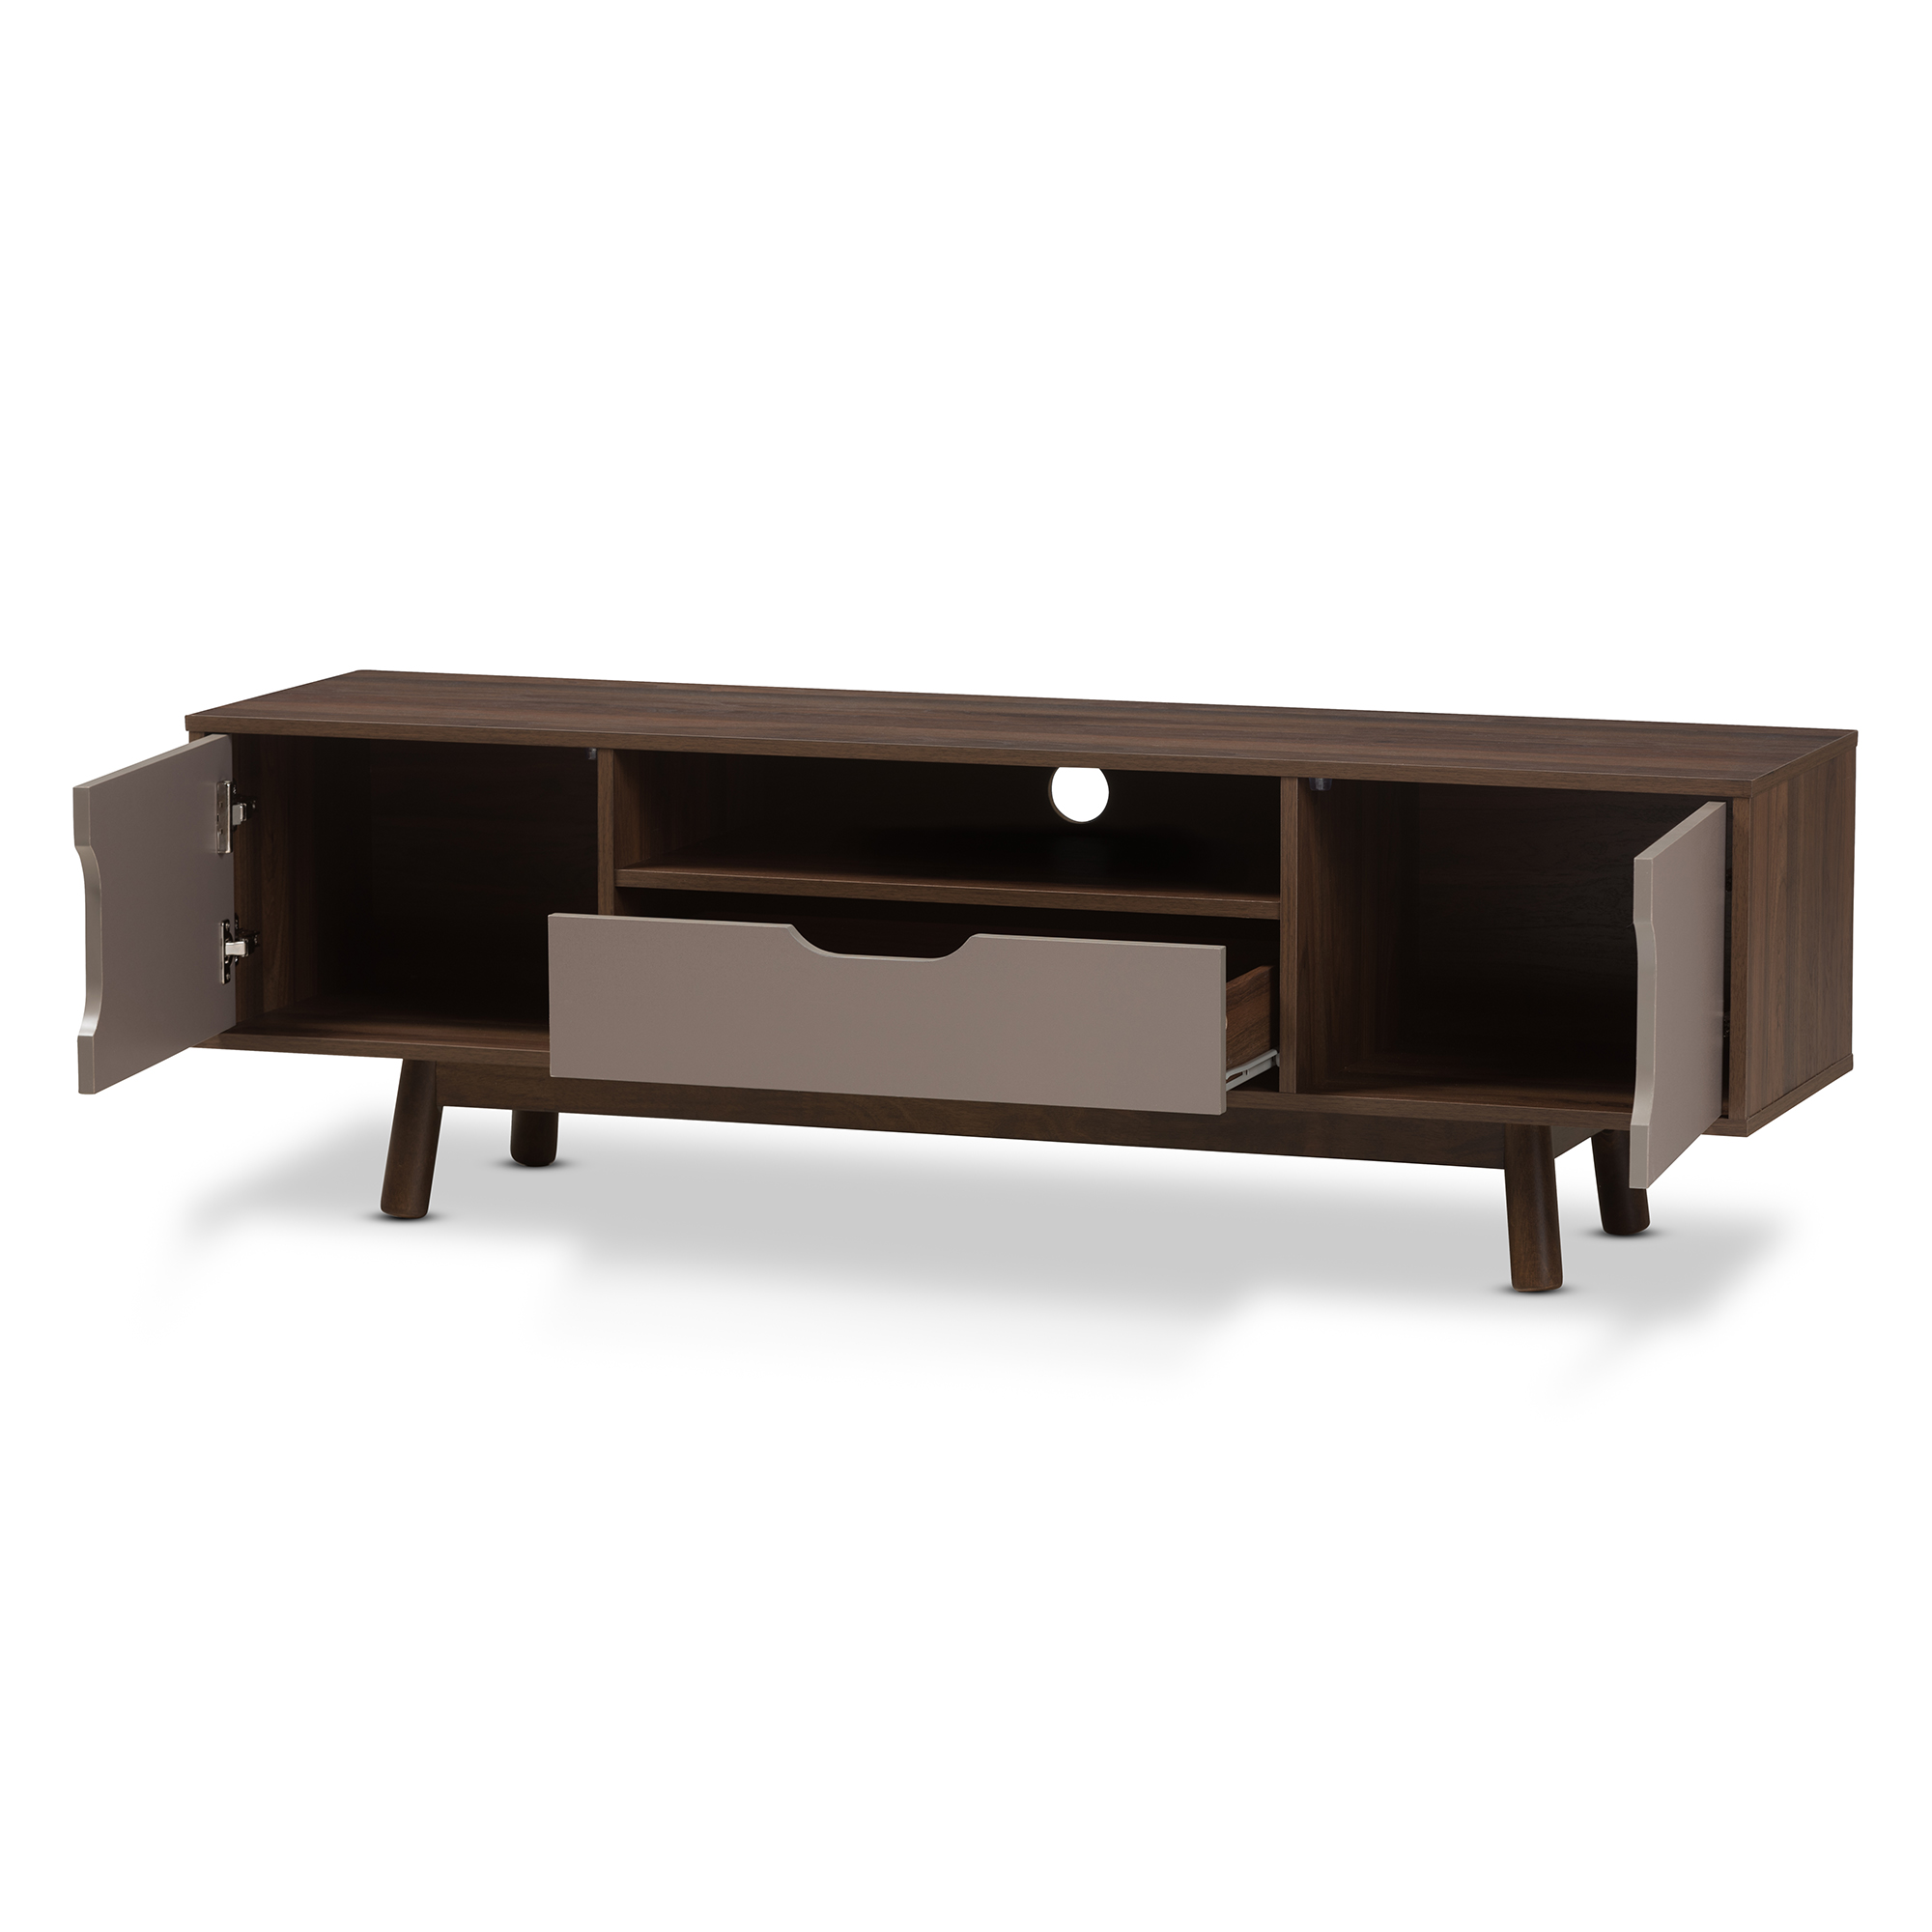 Tv Sideboard Modern Baxton Studio Britta Mid Century Modern Walnut Brown And Grey Two Tone Finished Wood Tv Stand